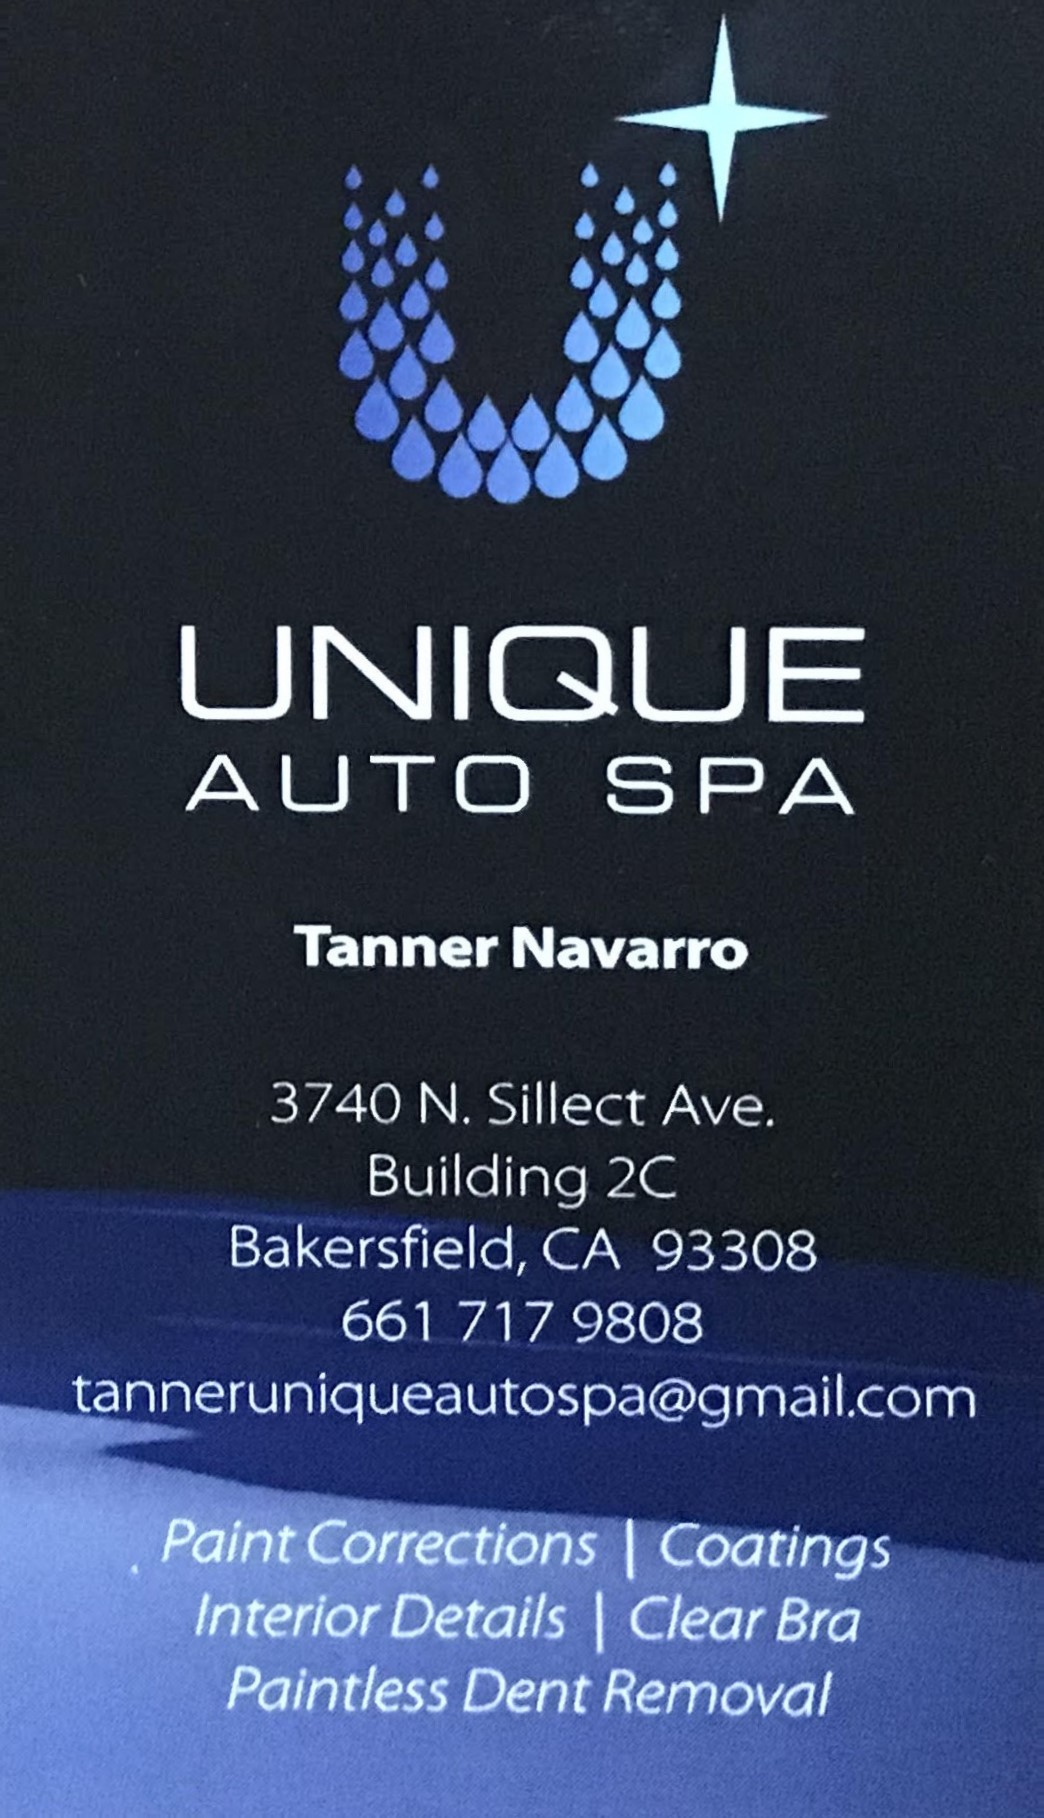 Unique Auto Spa